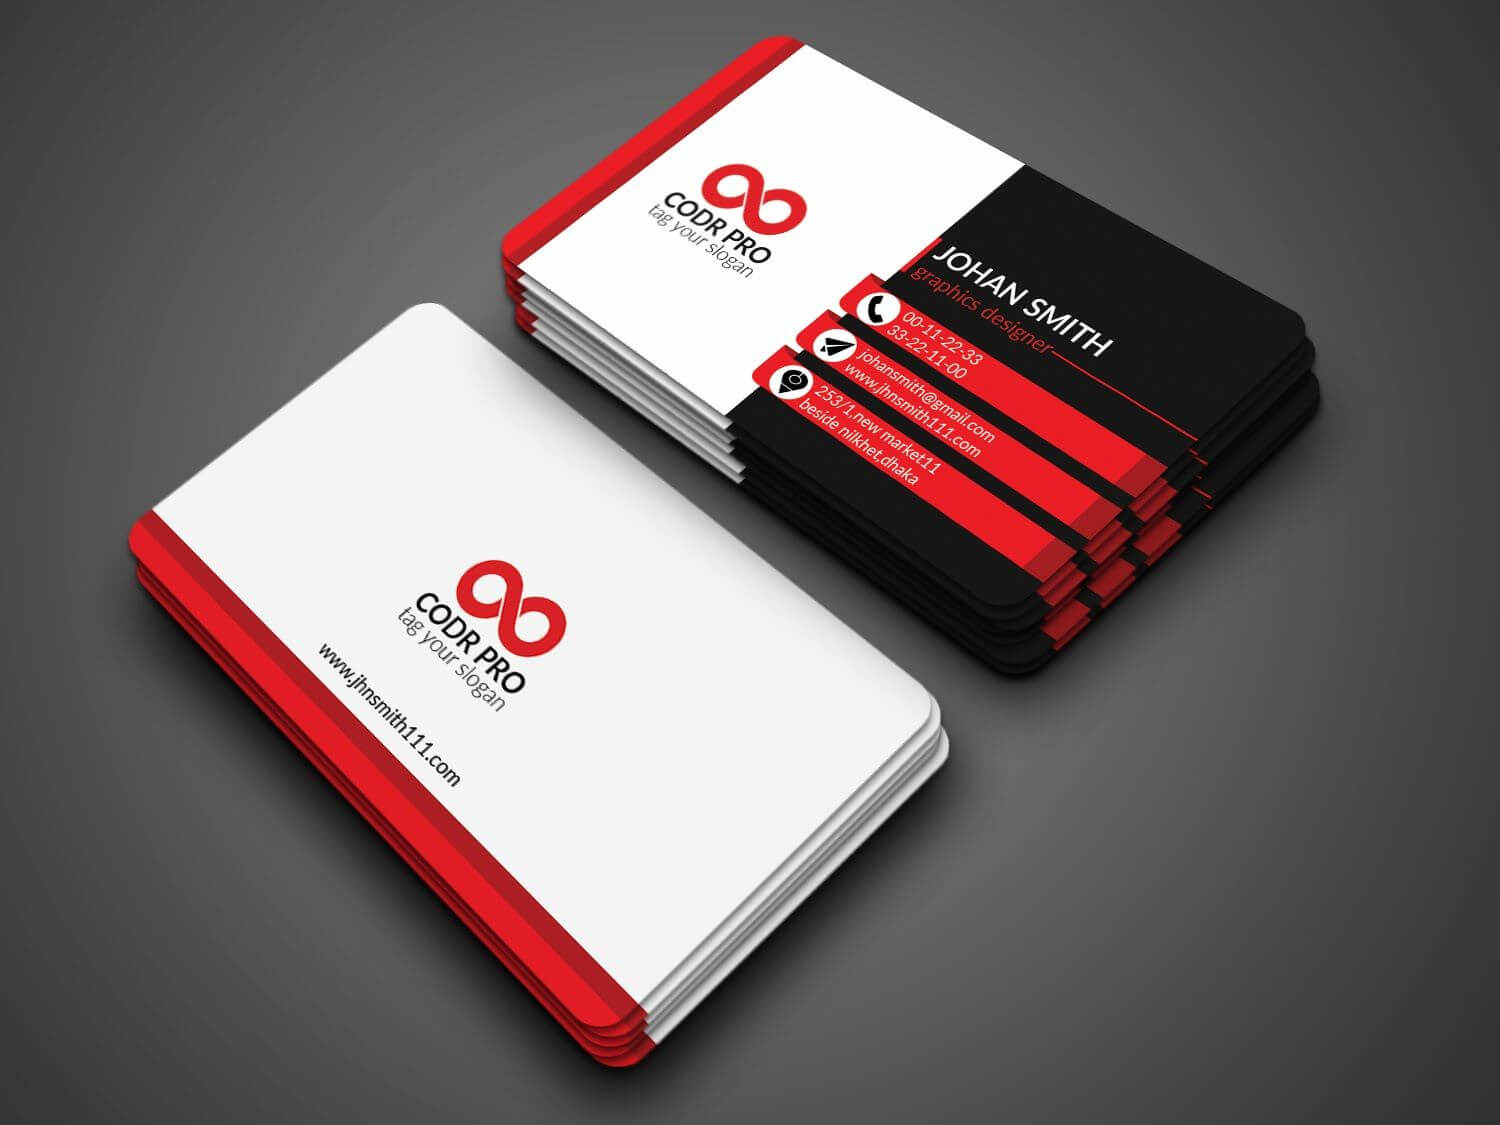 Professional Business Card Design In Photoshop Cs6 Tutorial For Business Card Template Photoshop Cs6